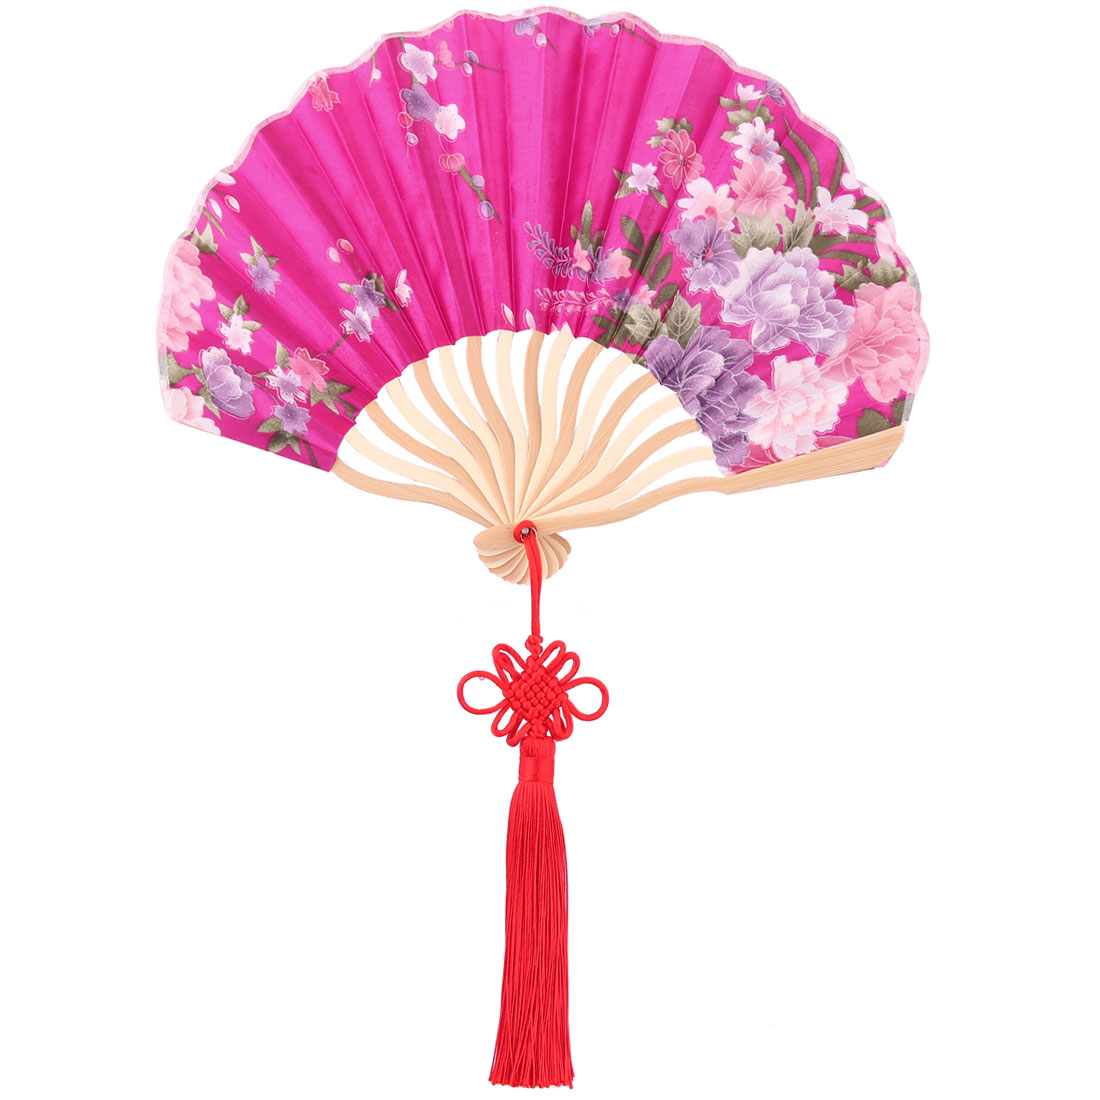 Bamboo Frame Chinese Knot Tassel Pendant Decor Dancing Folding Hand Fan Fuchsia